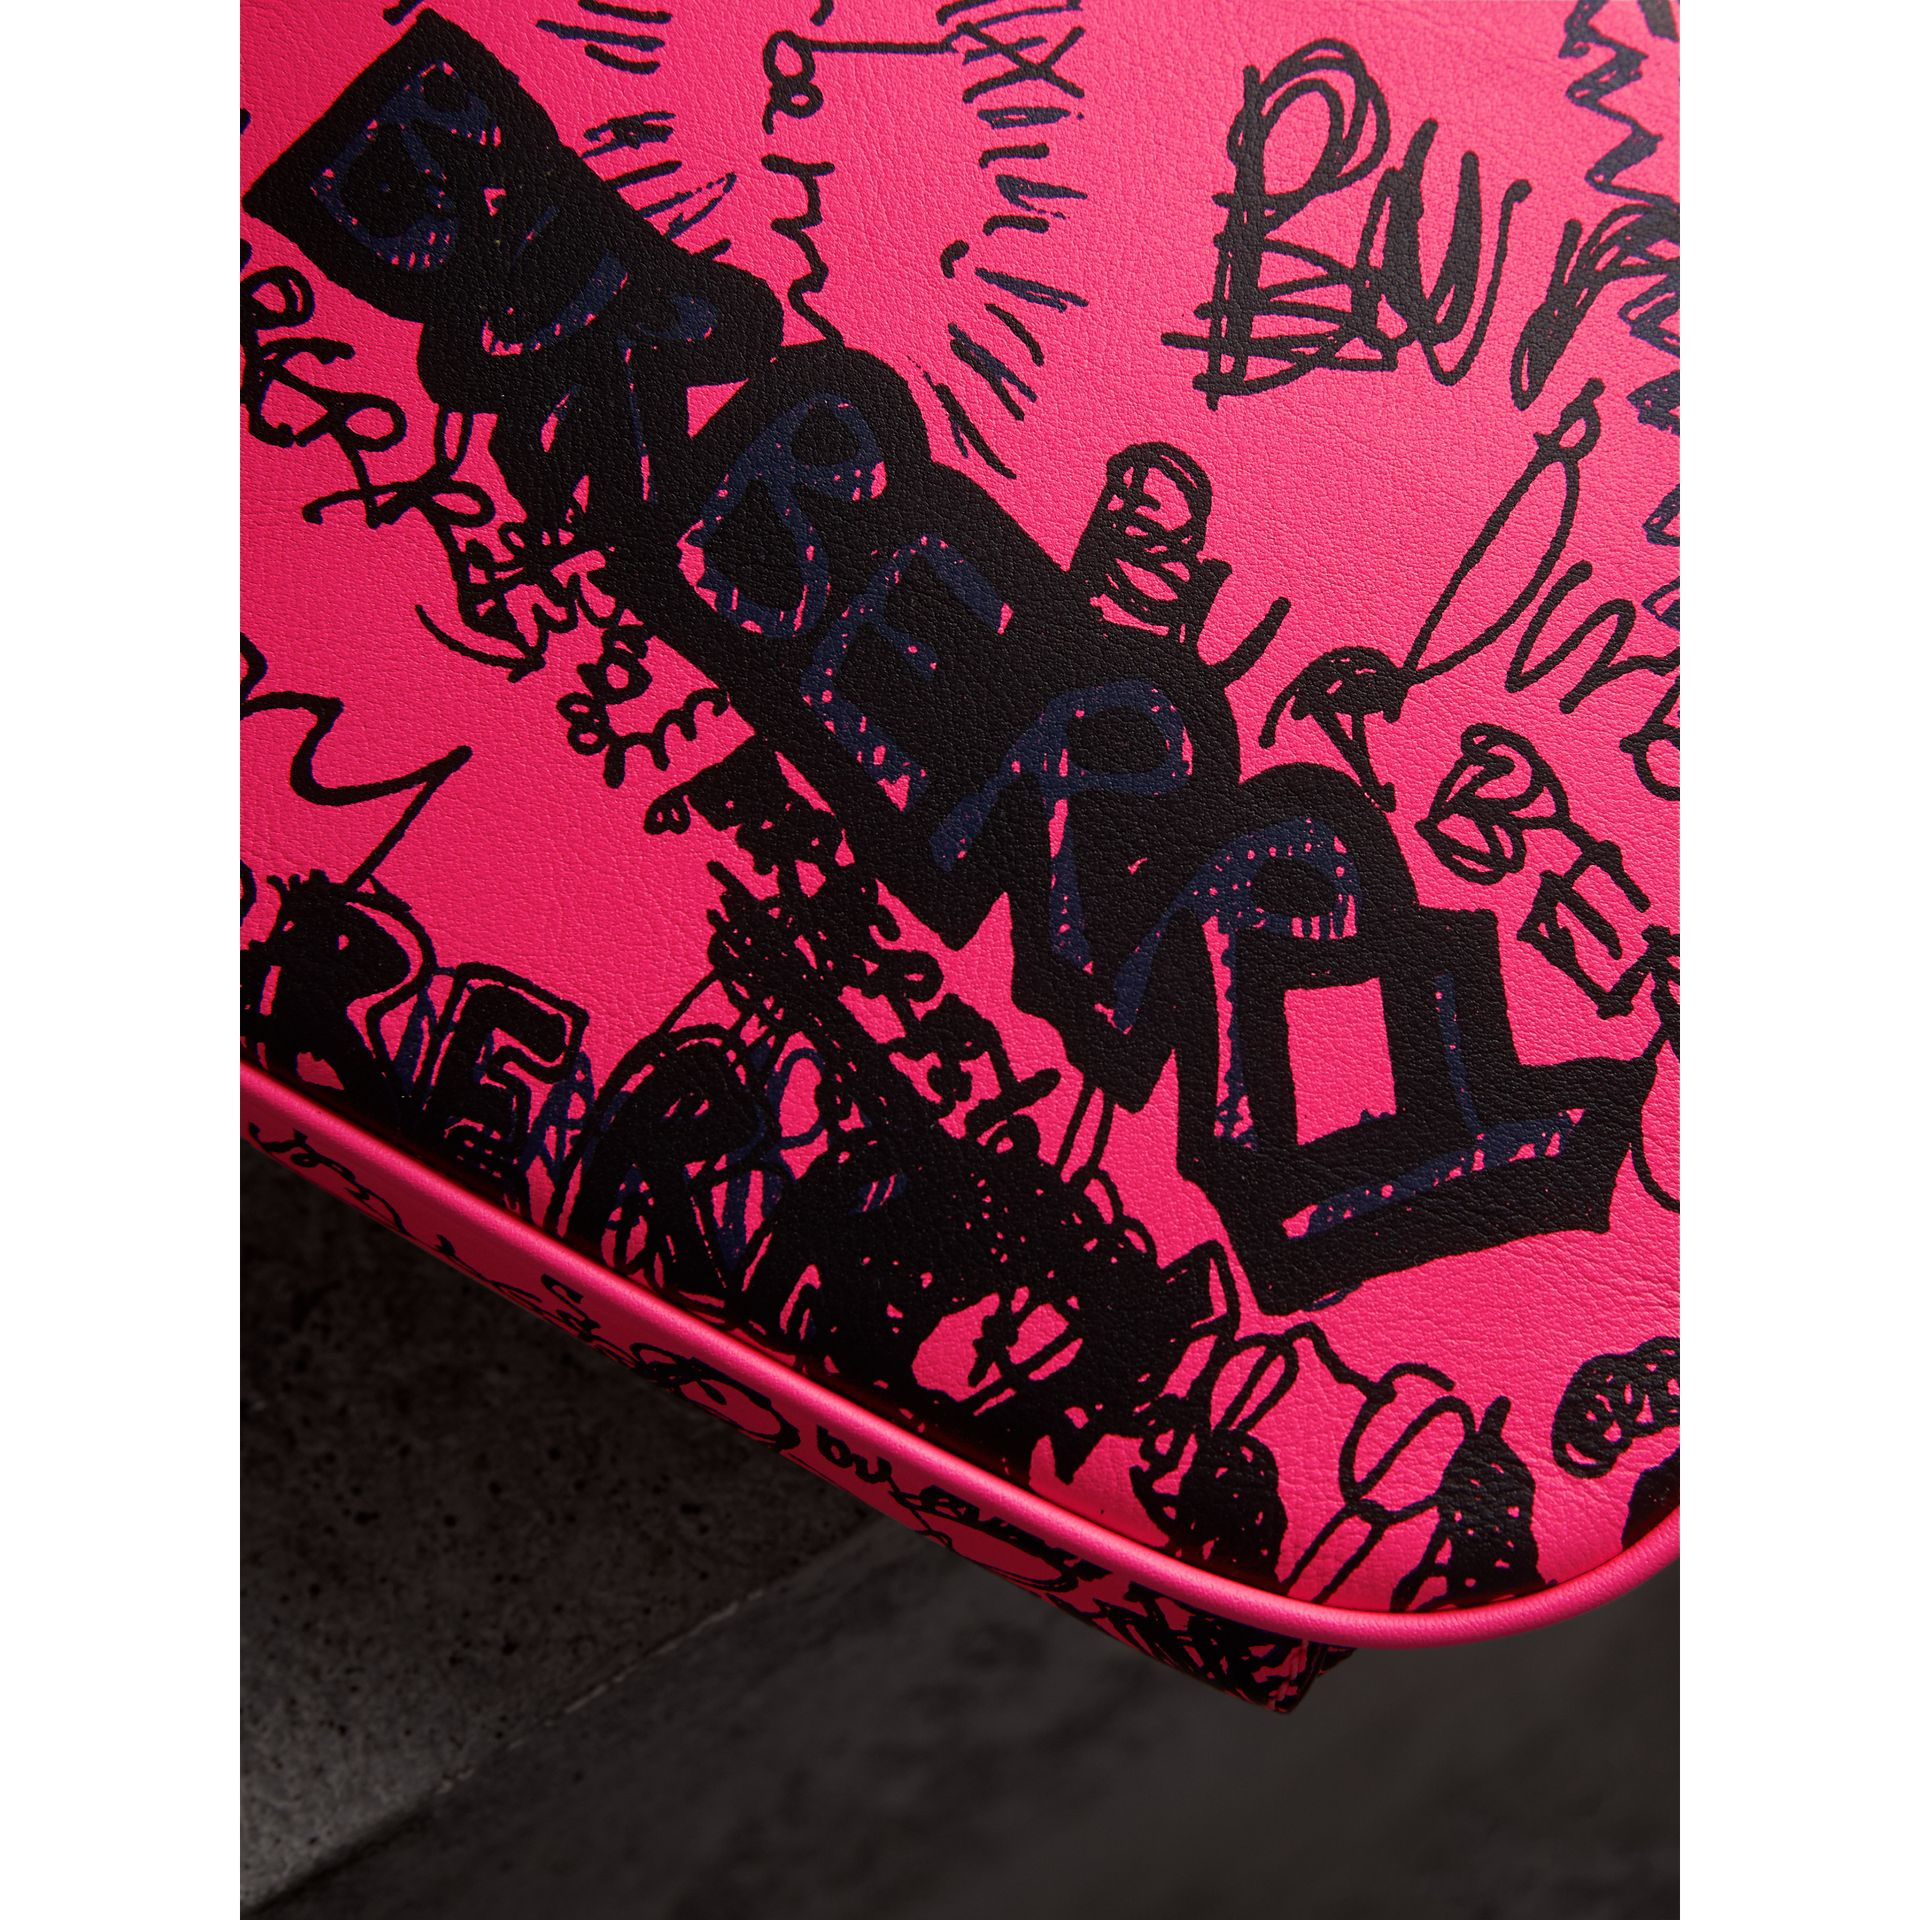 Small Doodle Print Leather Frame Bag in Neon Pink - Women | Burberry - gallery image 1